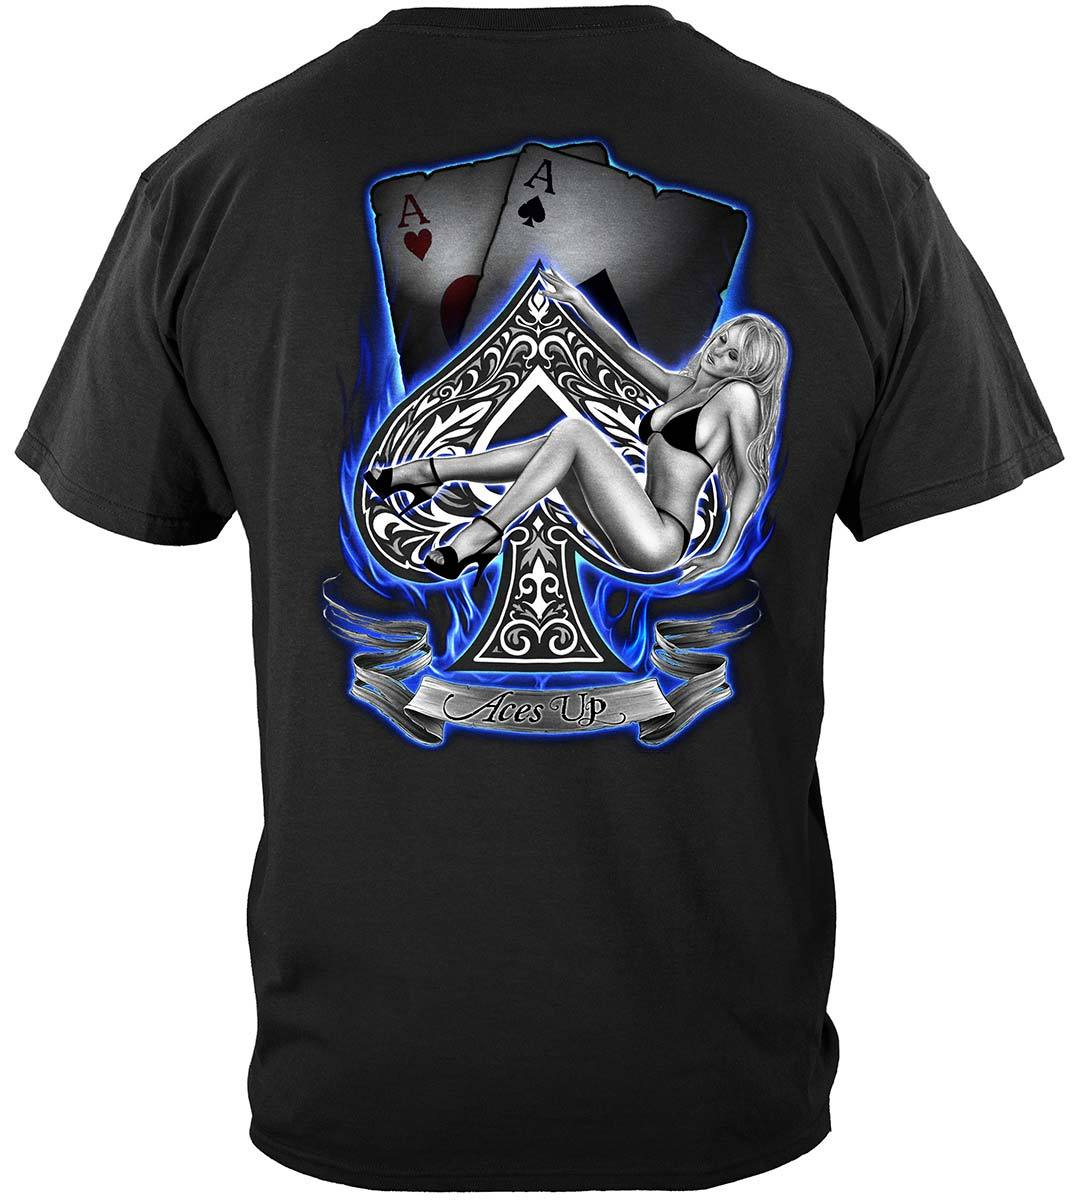 Aces Up Premium T-Shirt